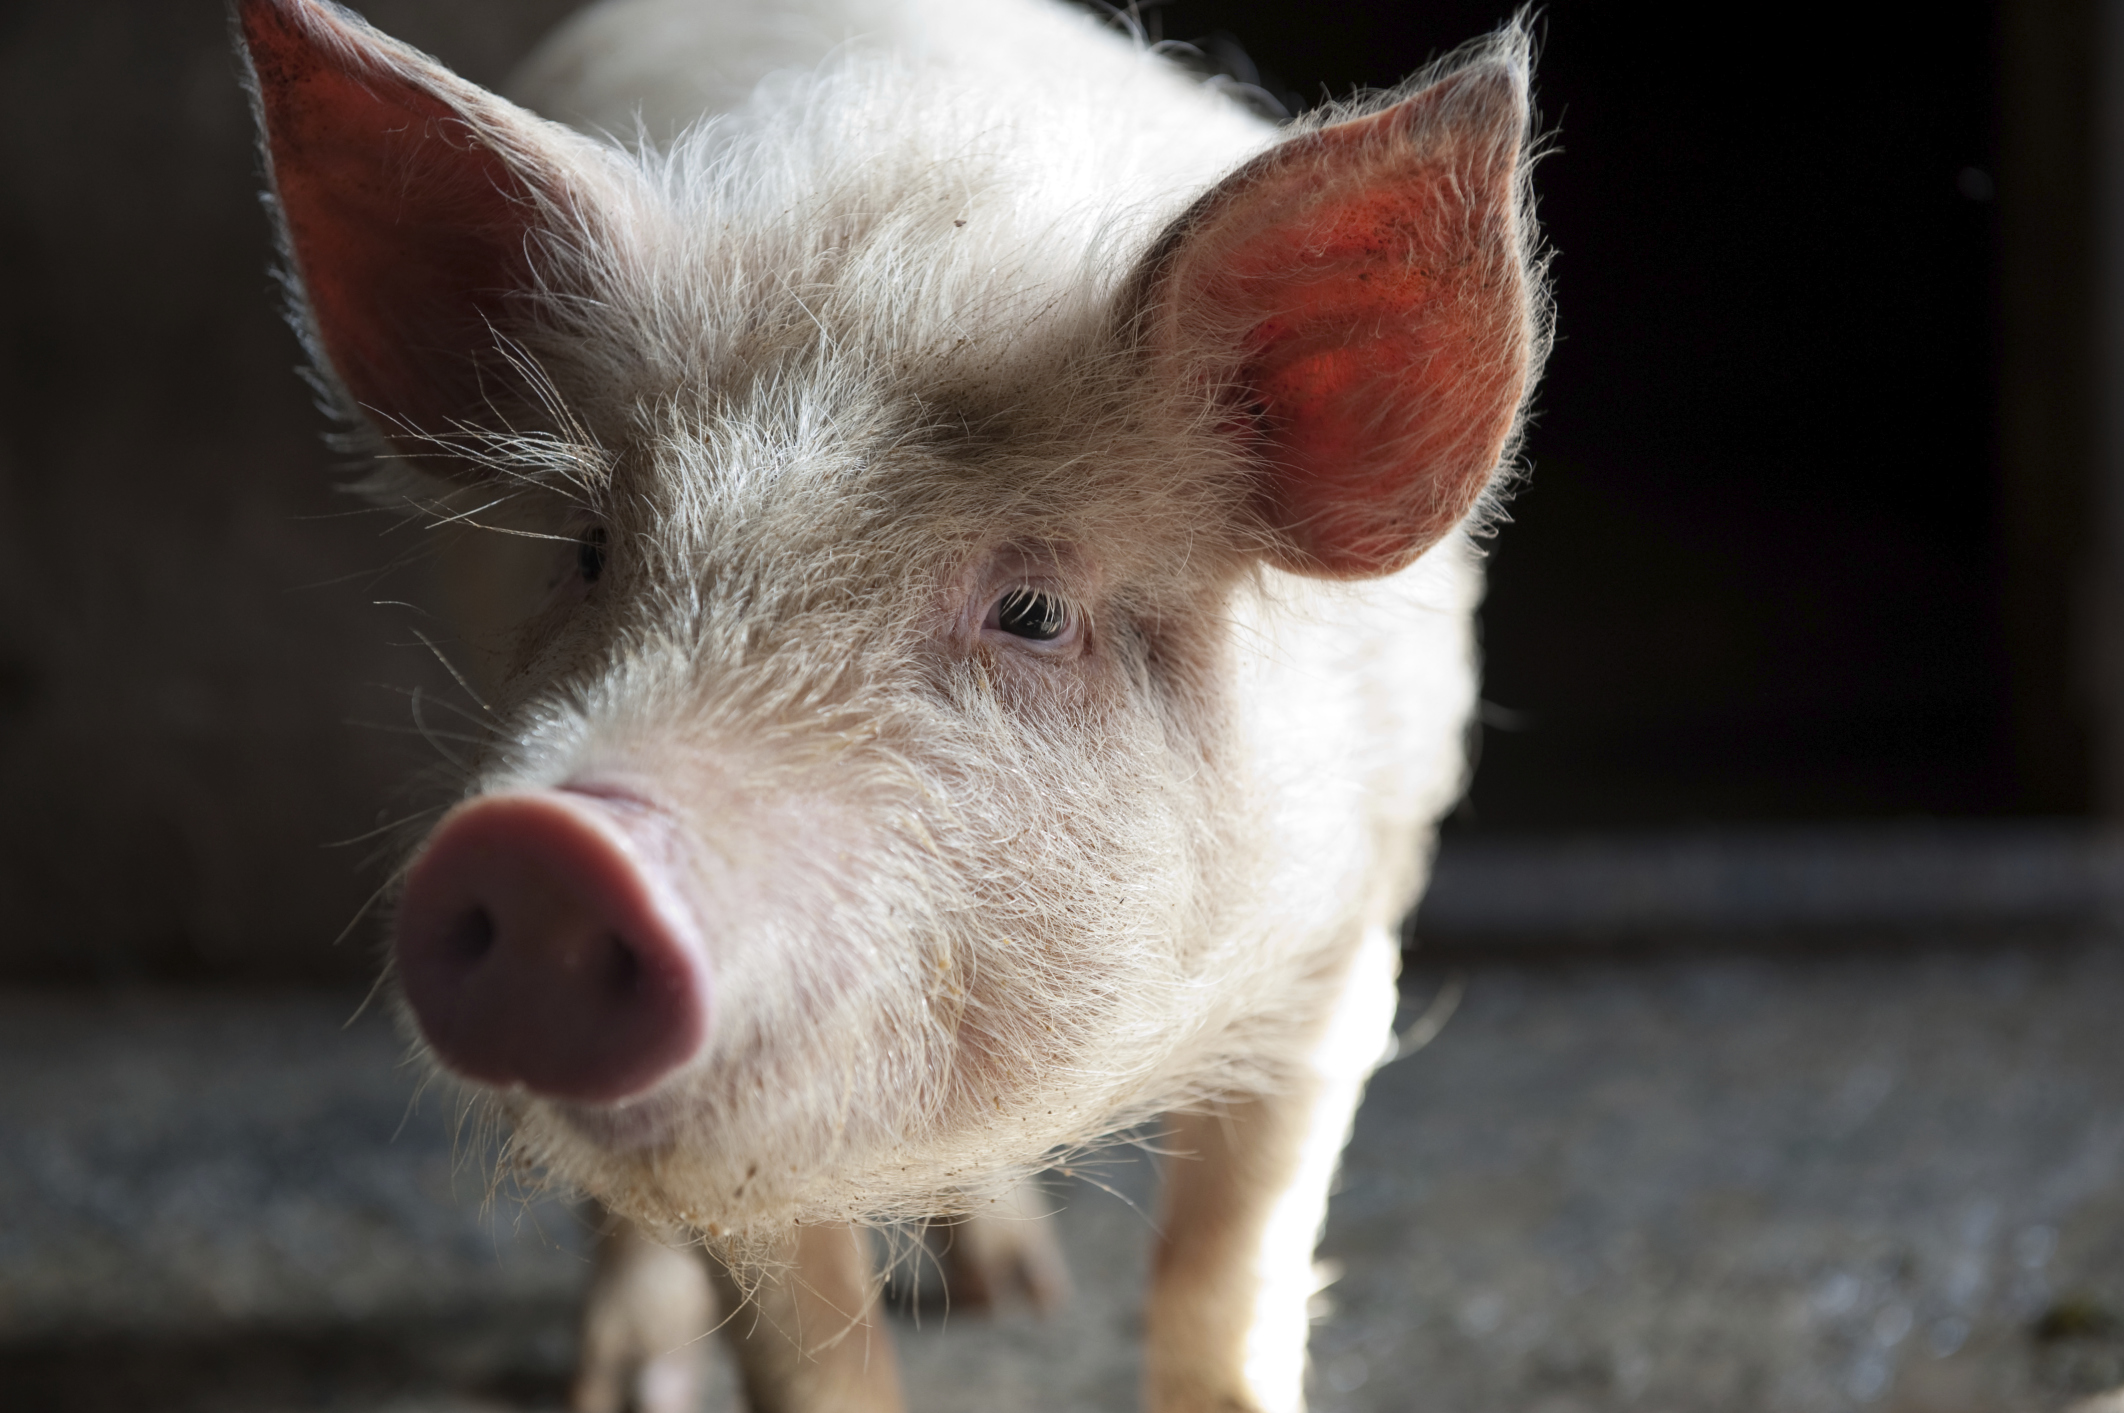 How Old Must a Pig Be for Slaughter? | Career Trend